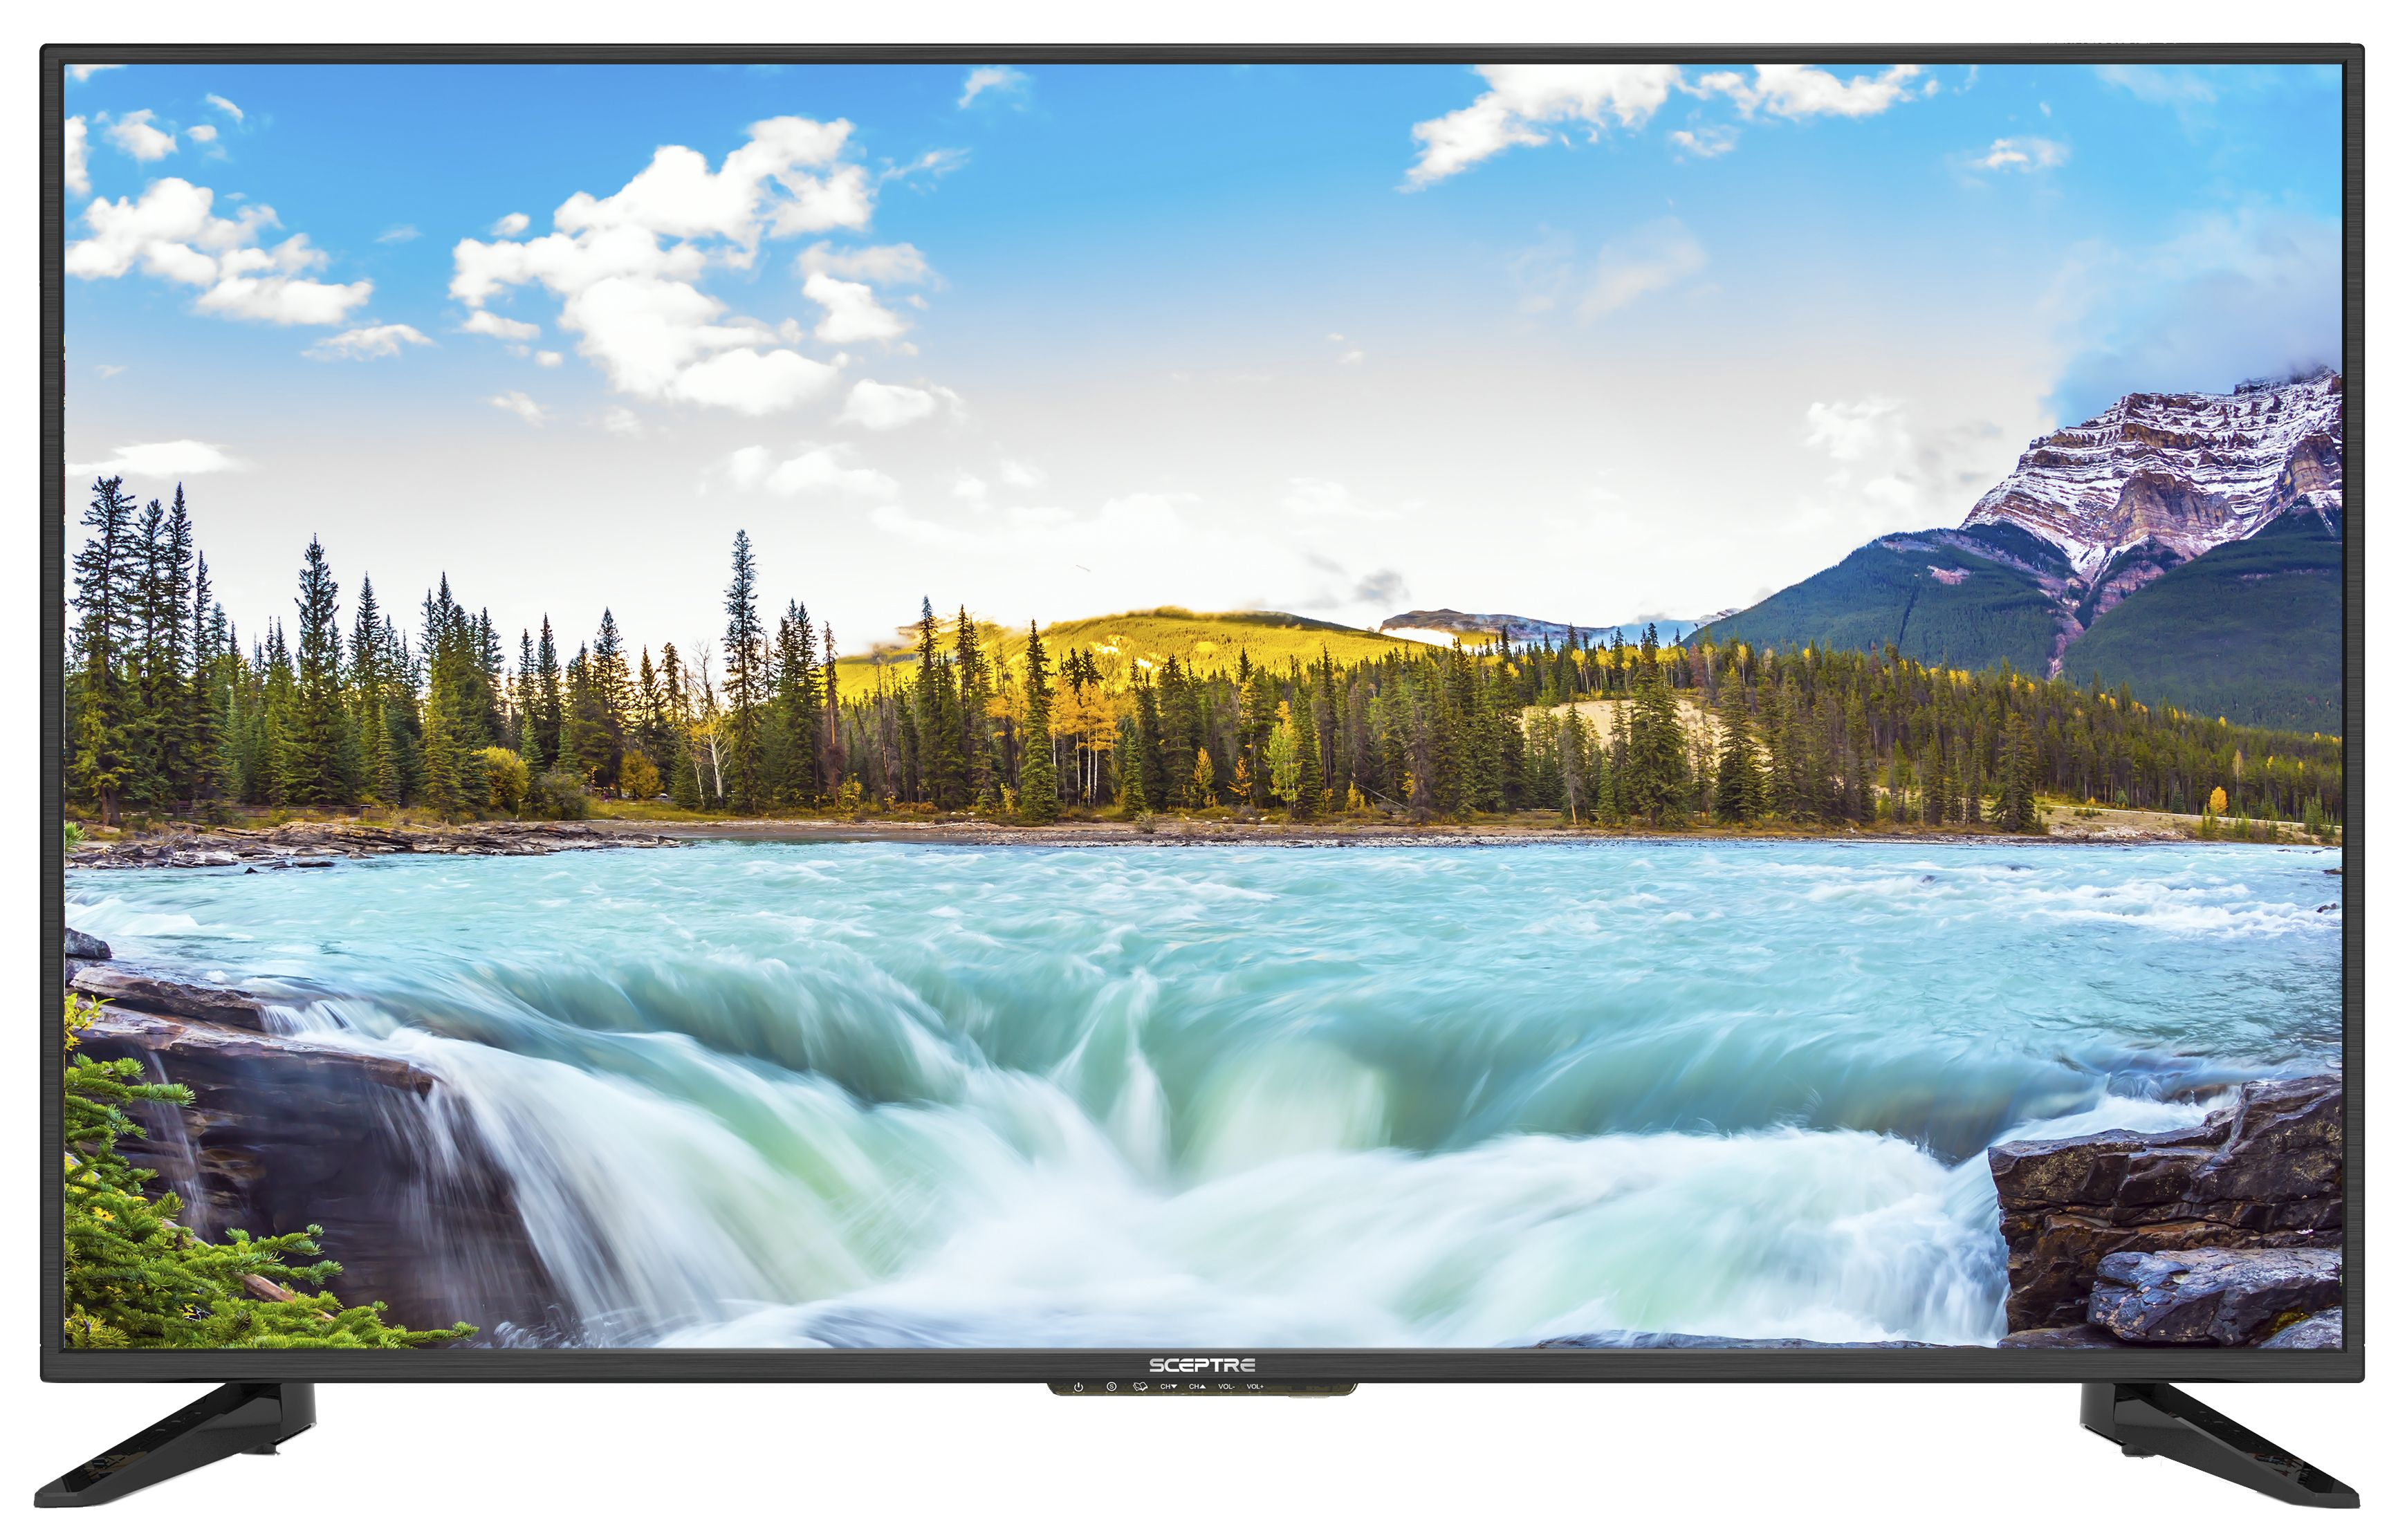 Sceptre 50-in Class FHD LED TV...